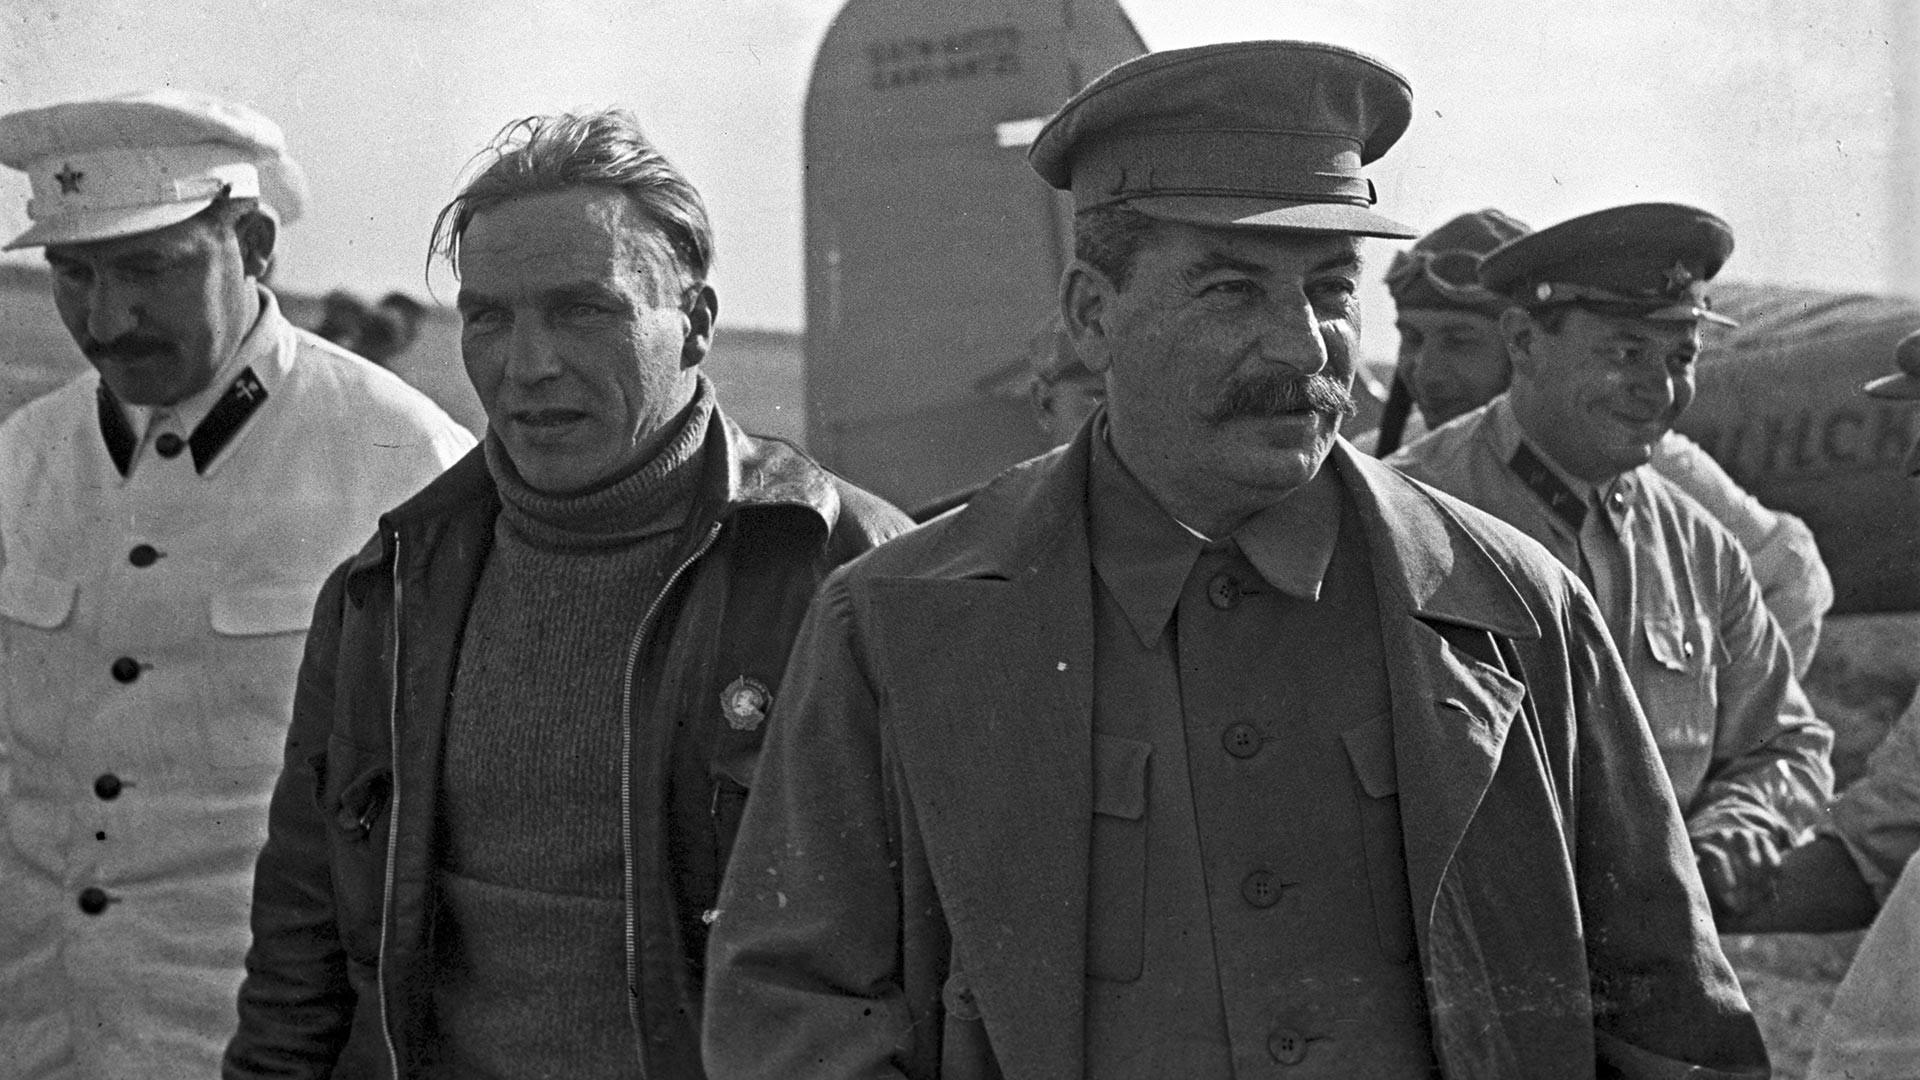 Stalin personally met the pilots upon their return to Moscow.